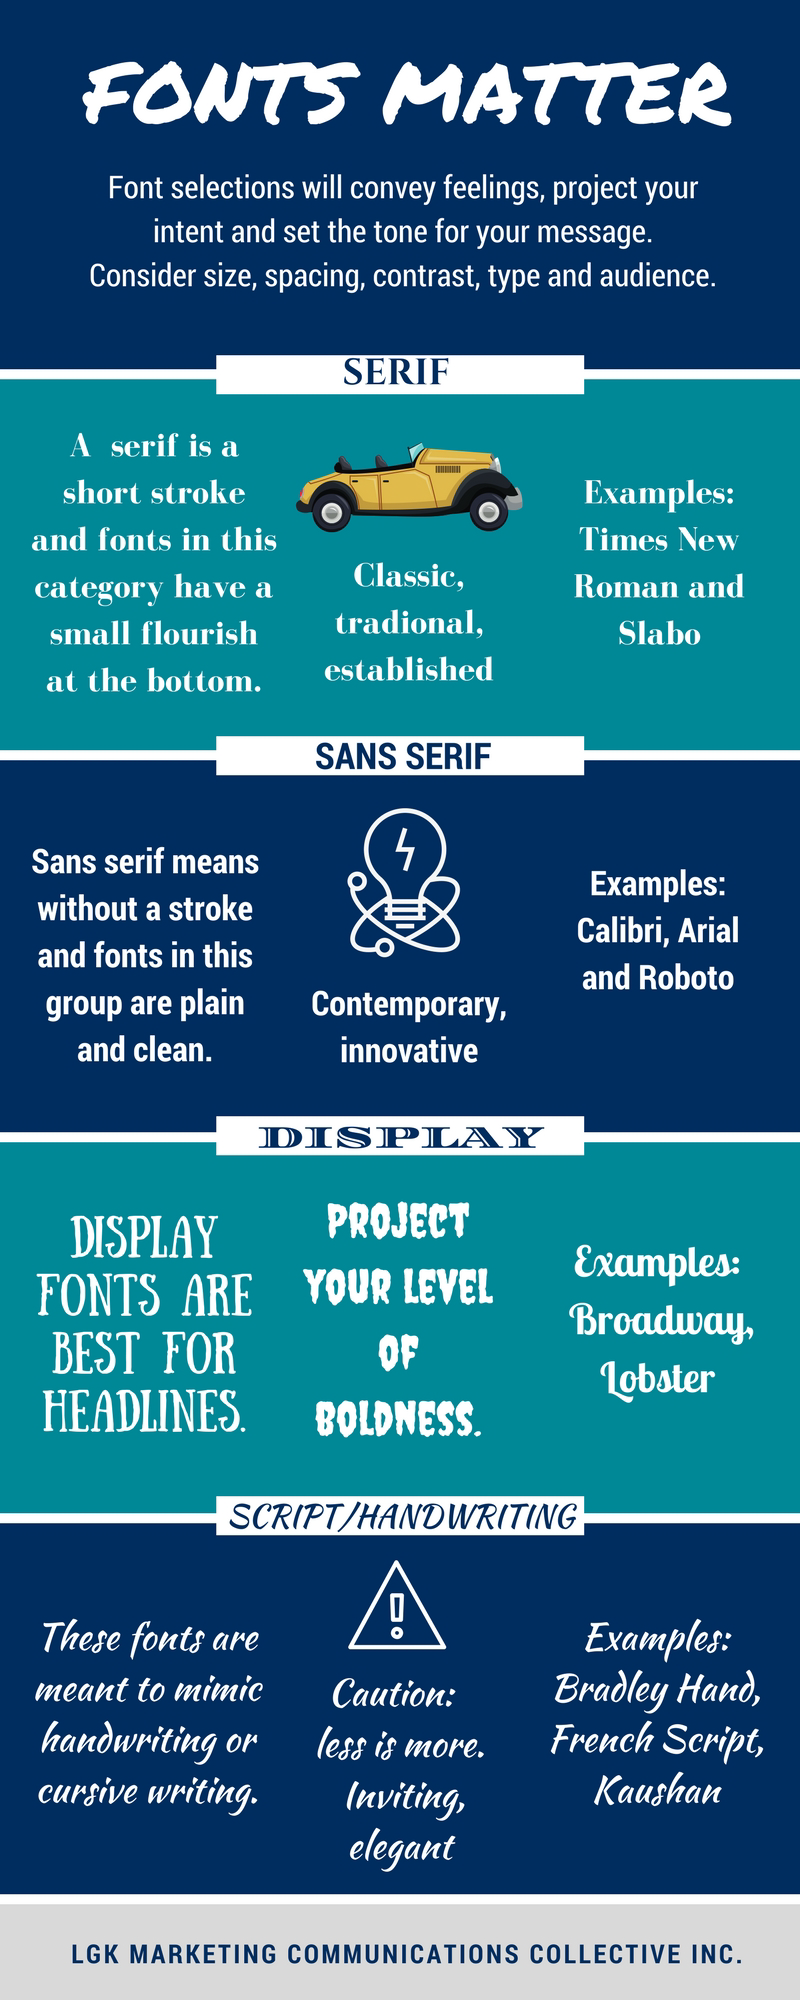 Fonts Matter for Content Marketing: Going Beyond Calibri, Arial, and